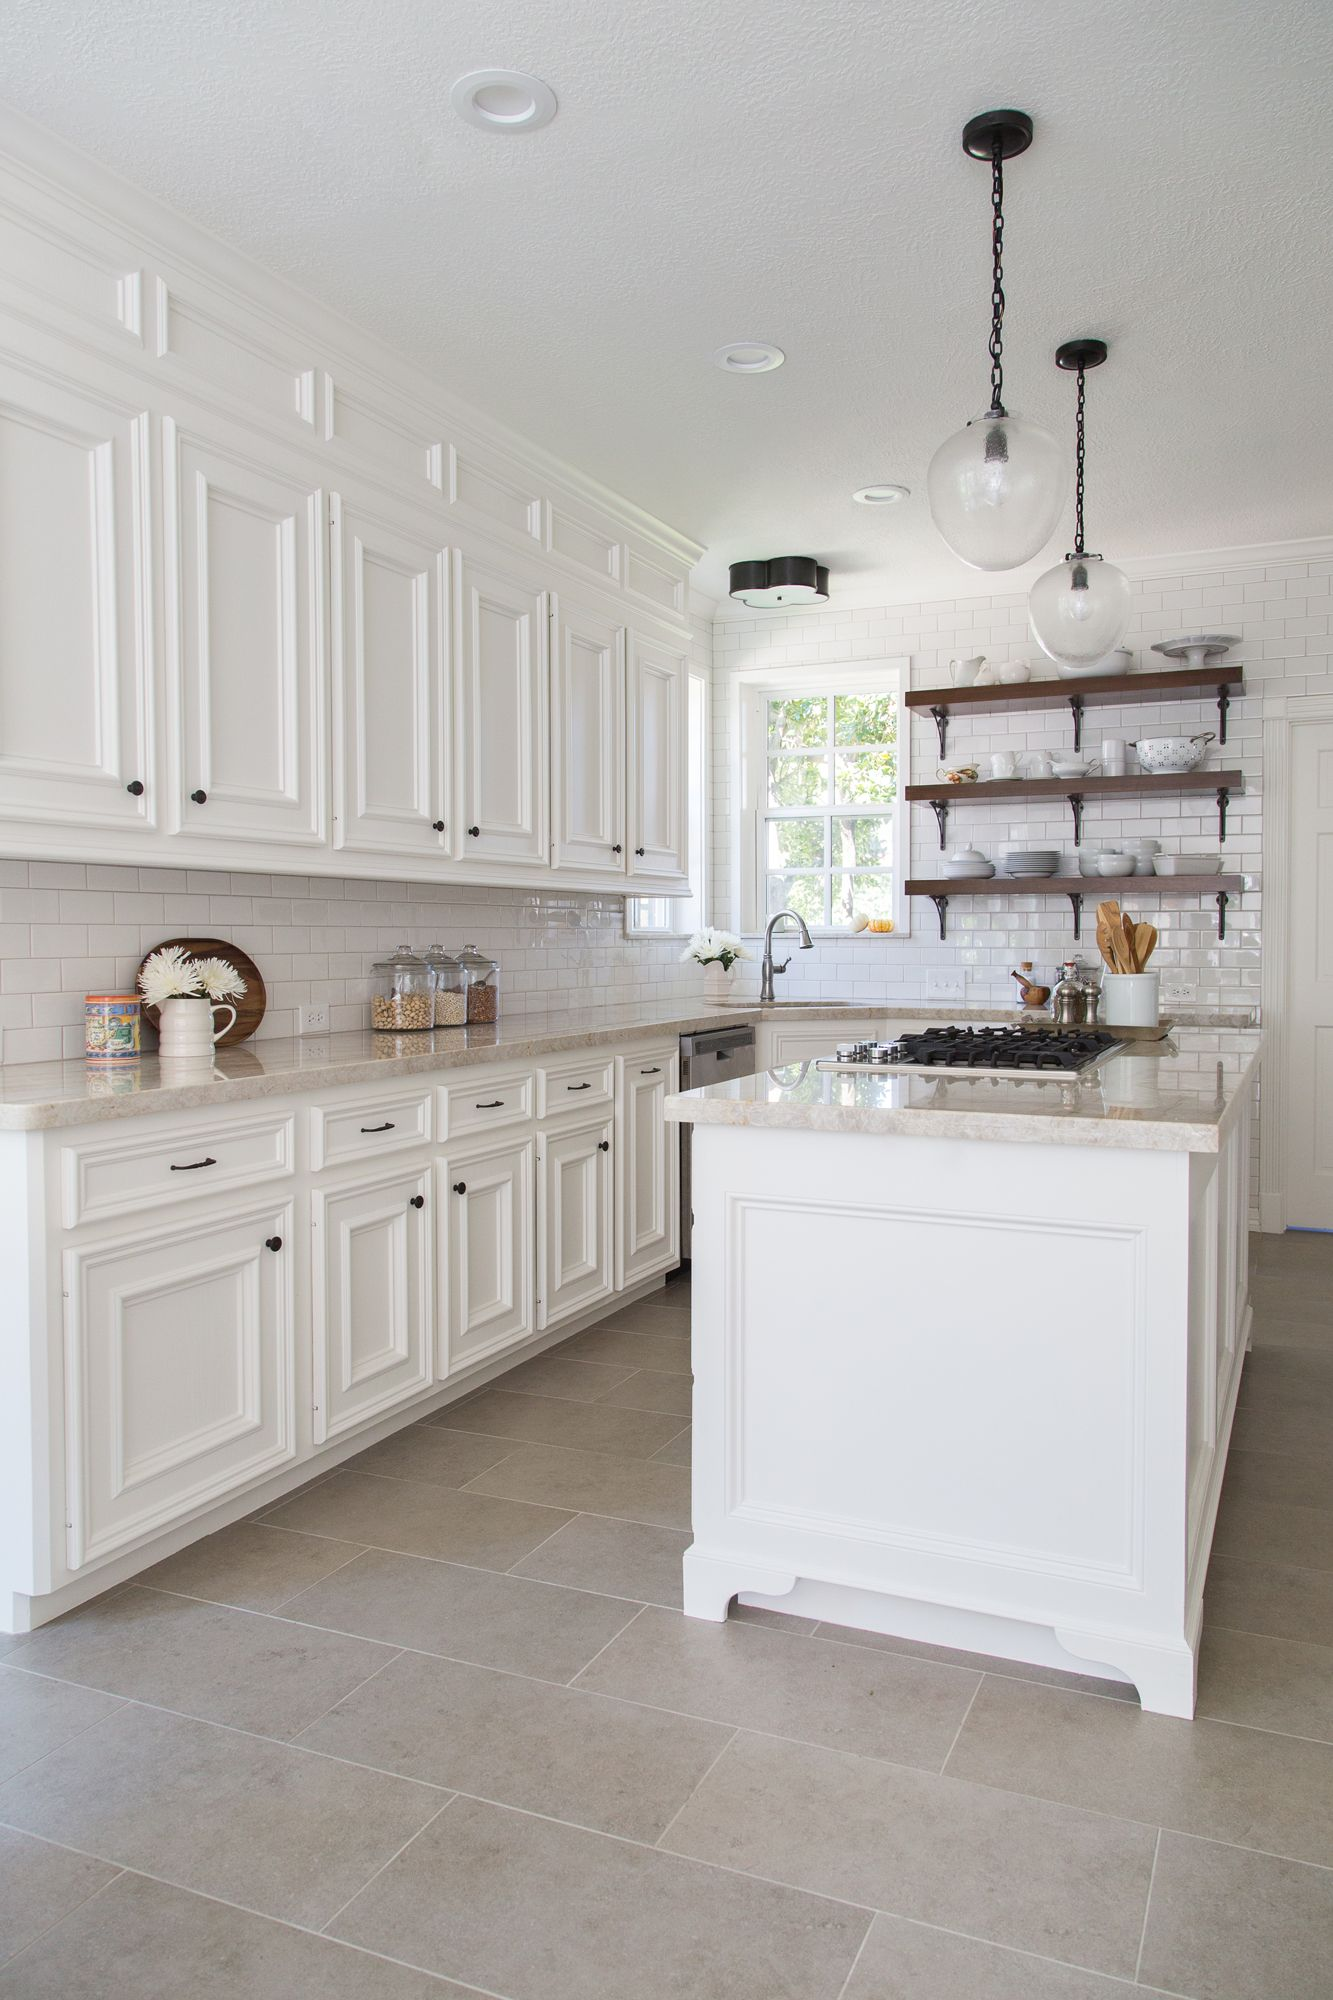 Farmhouse Kitchen Remodel | Interior Designer: Carla Aston | Photographer:  Tori Aston. Tile Kitchen FloorsKitchen ...